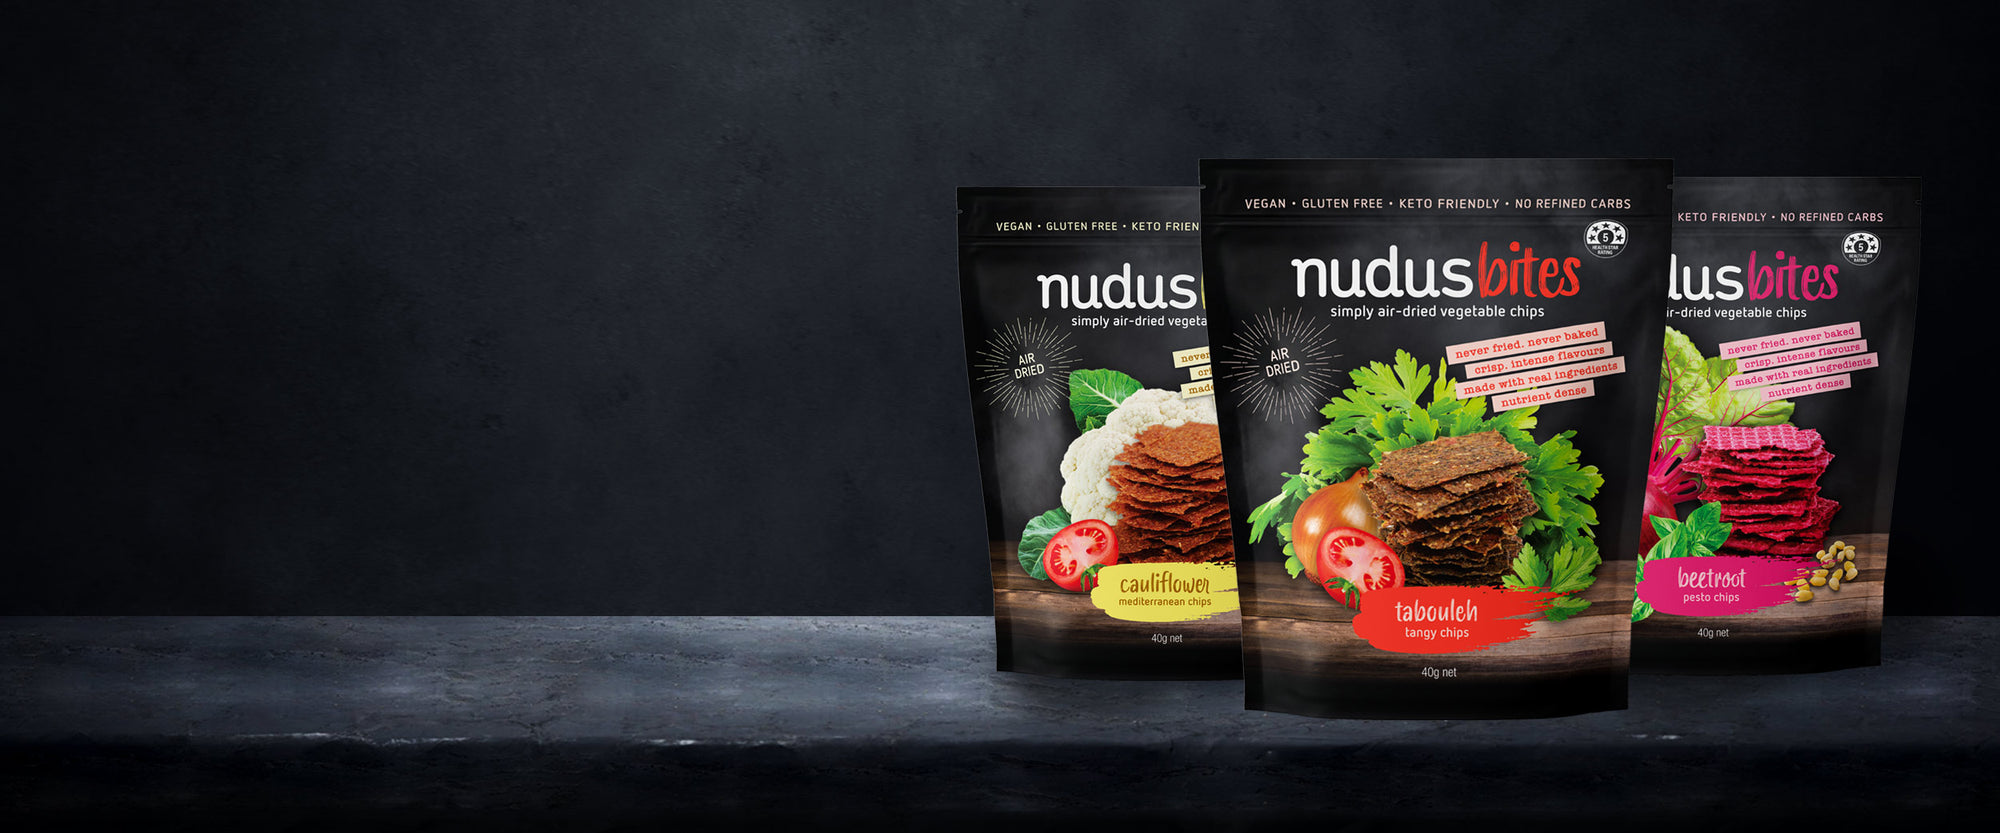 <span>Nudus bites</span>Air Dried Salad Chips.